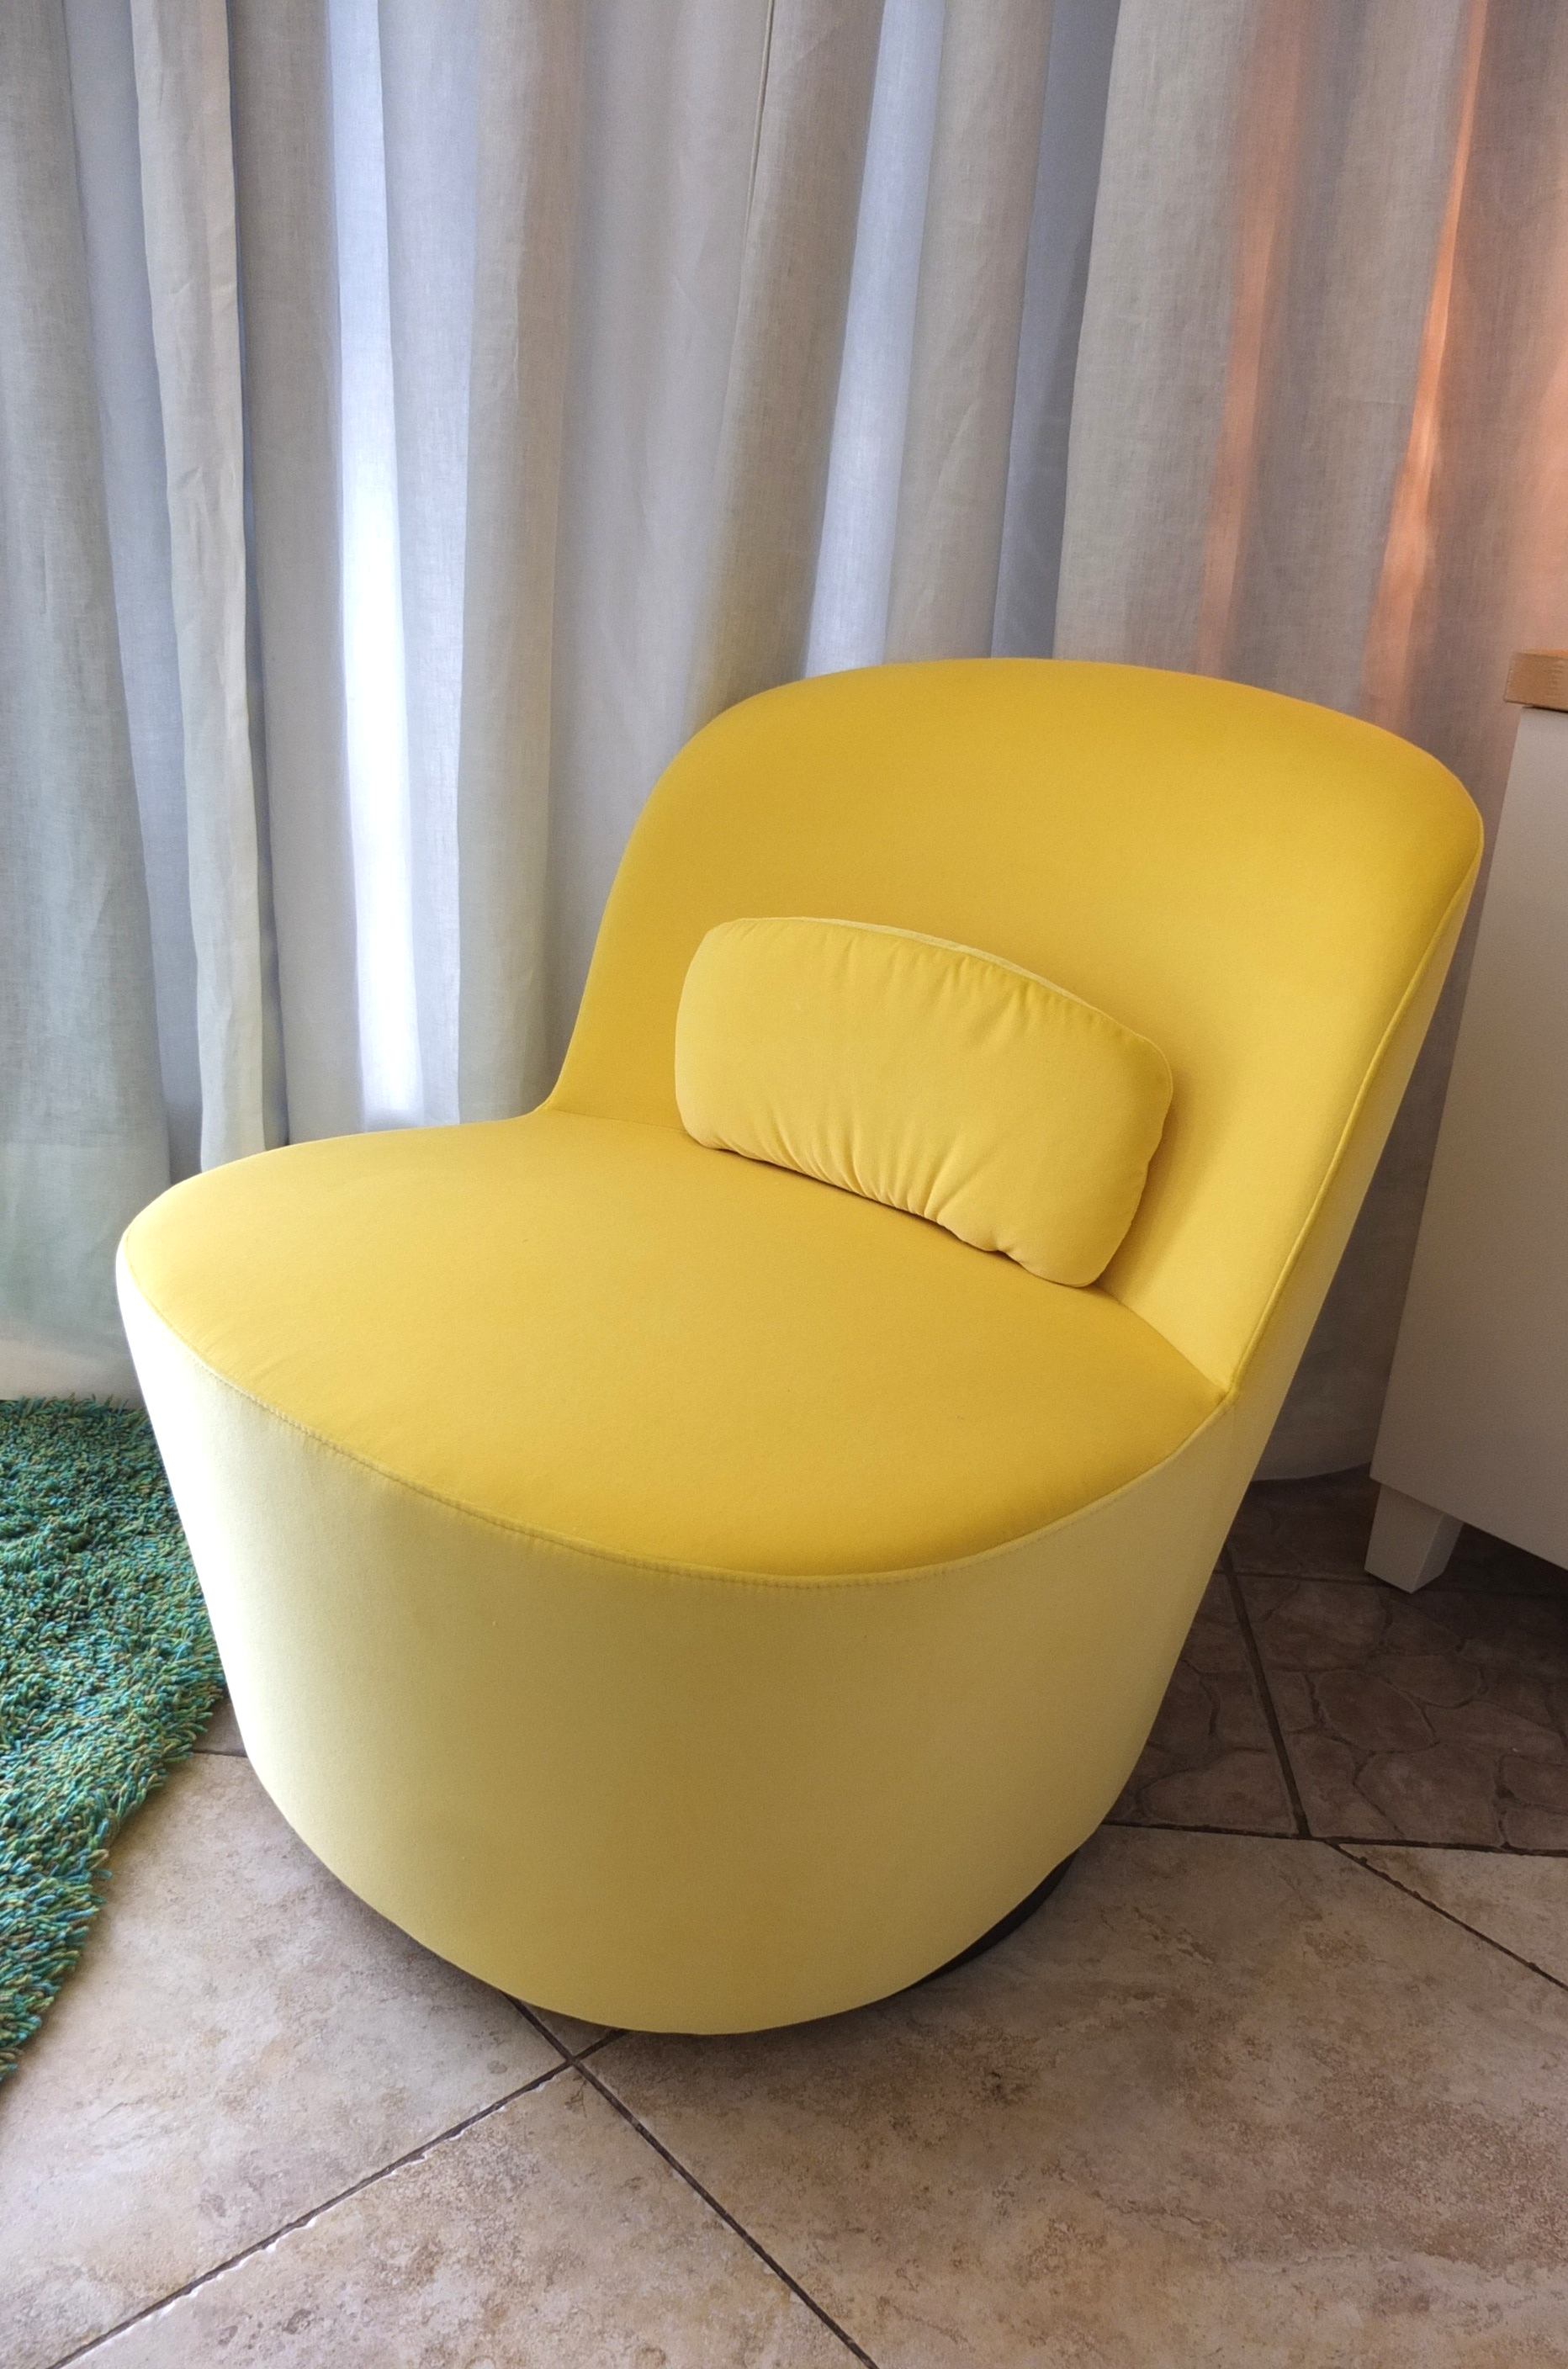 Ikea Yellow Chair With Its Small Footprint And Swivel Base, The Stockholm